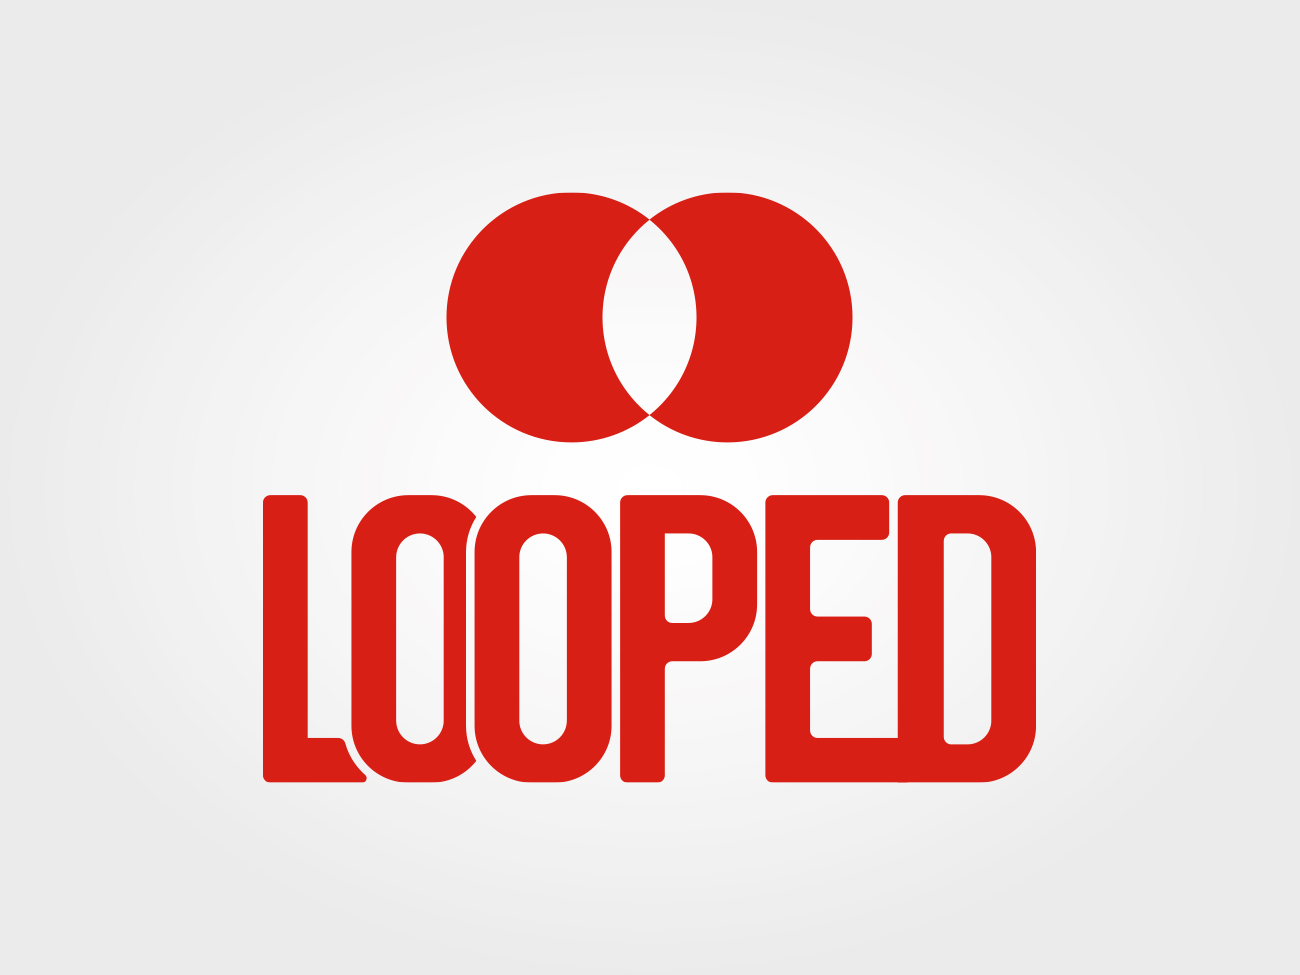 Red Looped logo on a grey gradient background